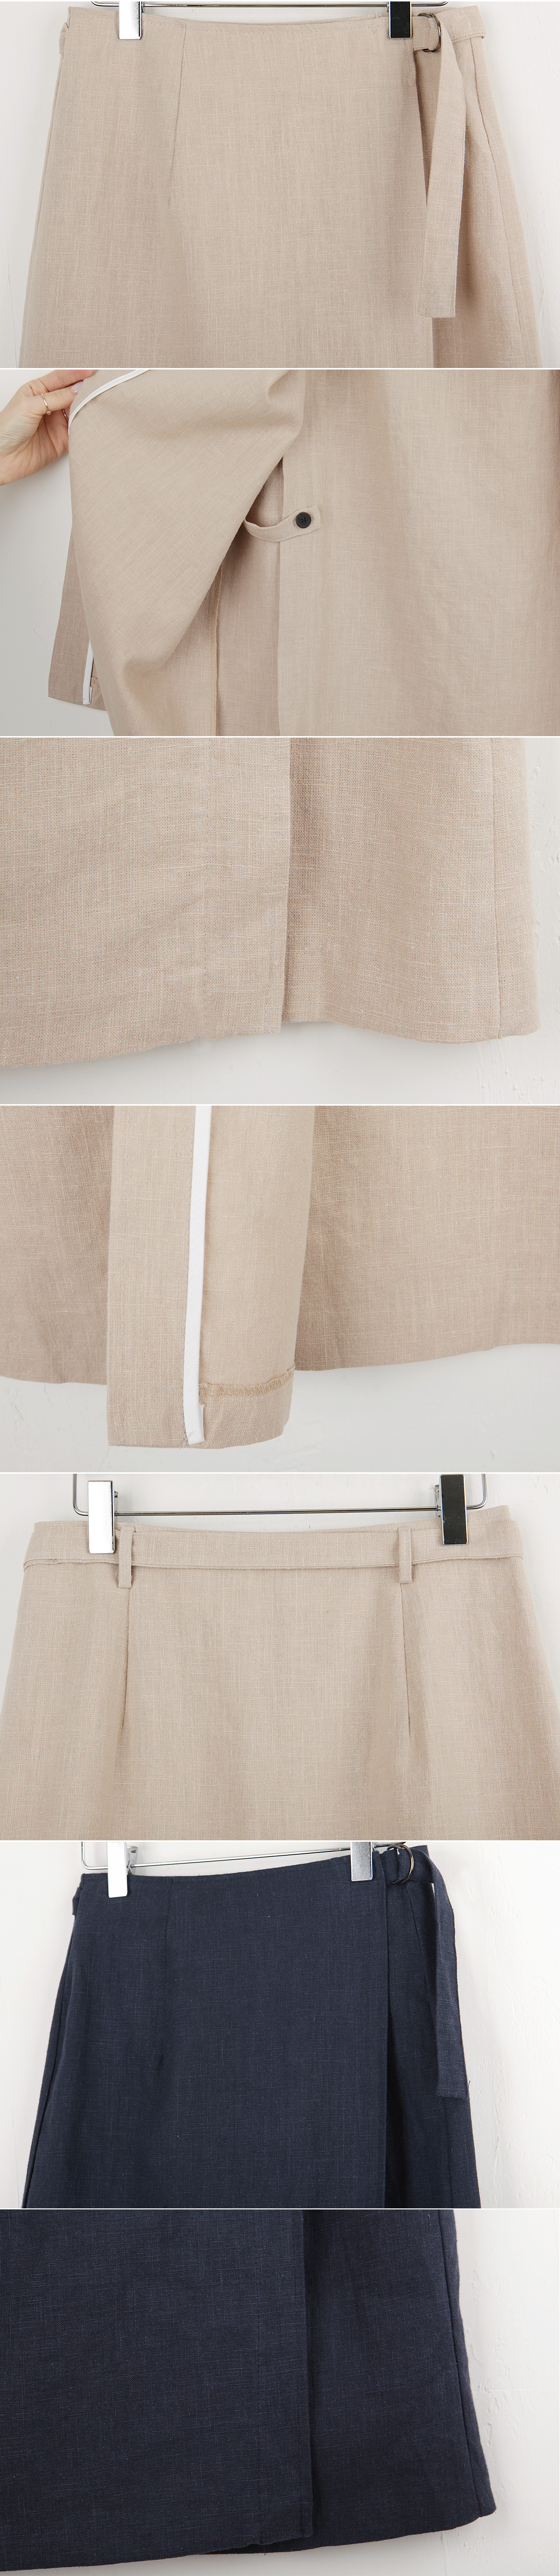 Wrapping lap skirt